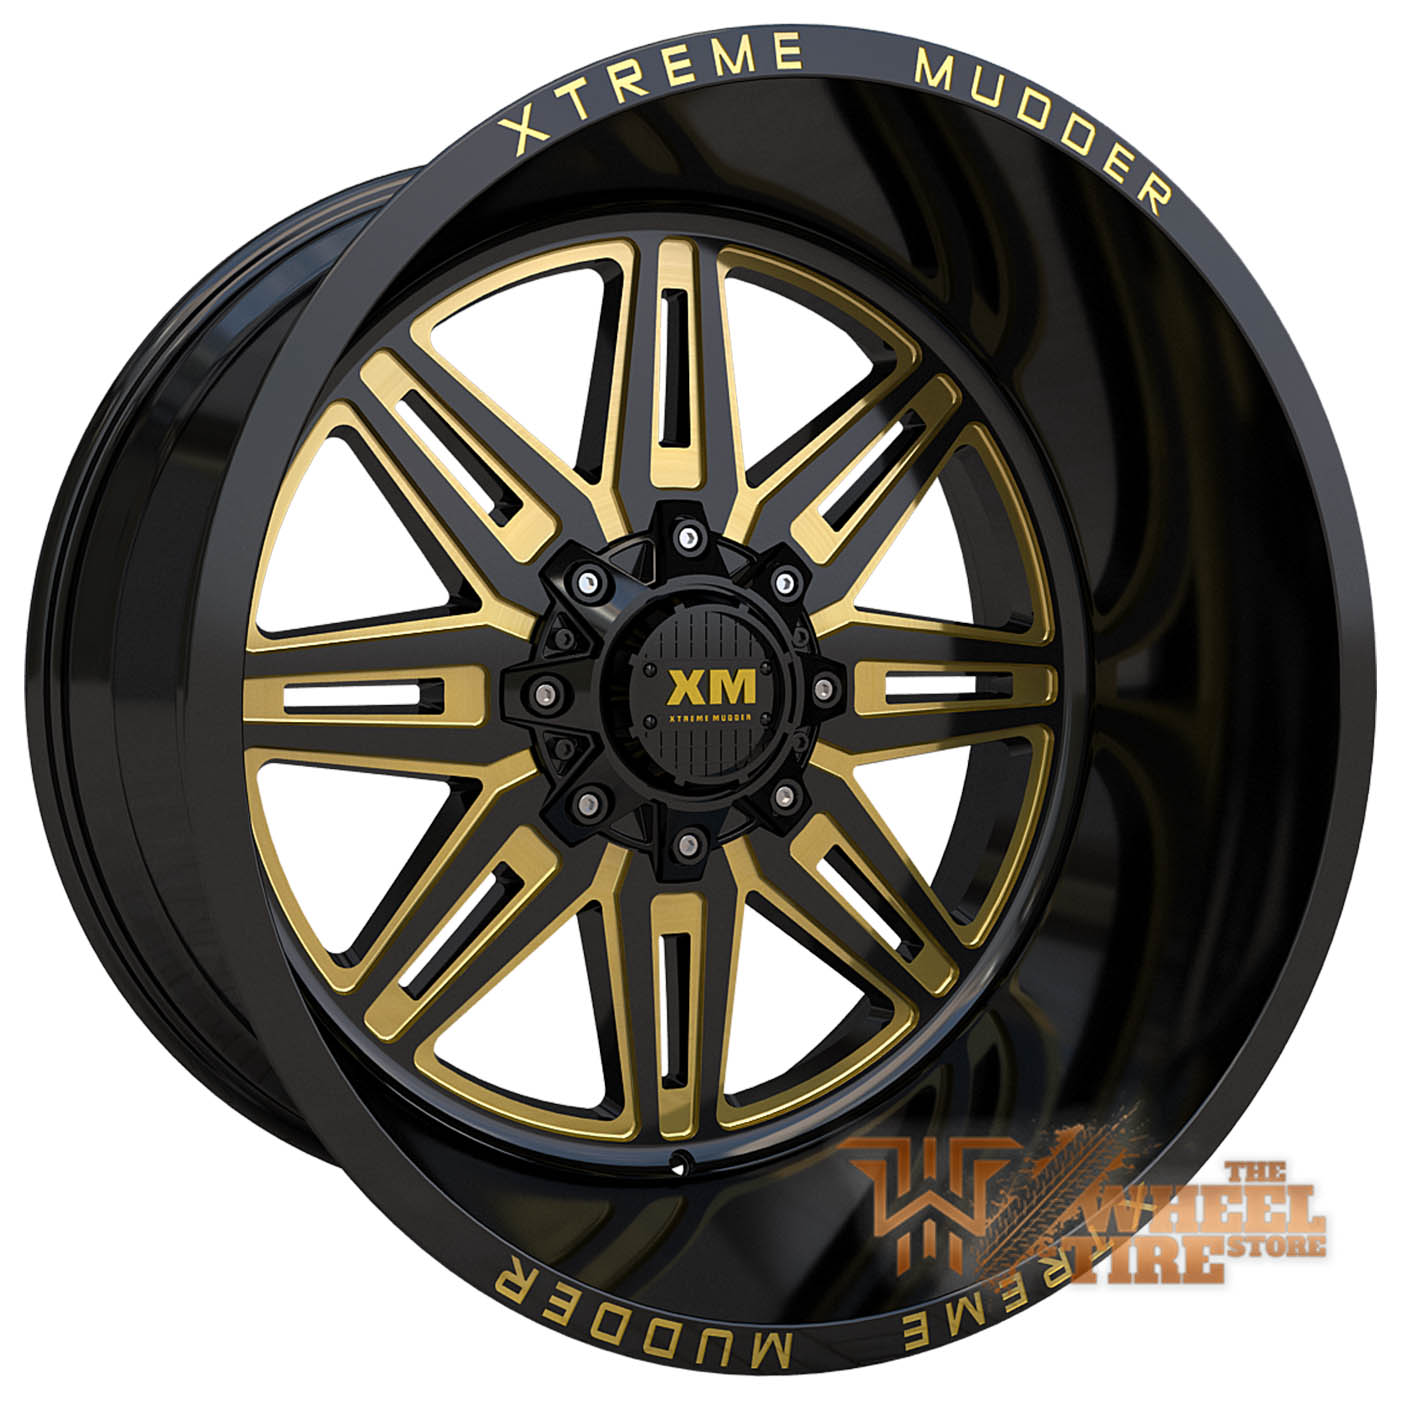 XTREME MUDDER XM-341 Wheel in Gloss Black Yellow Milled (Set of 4)